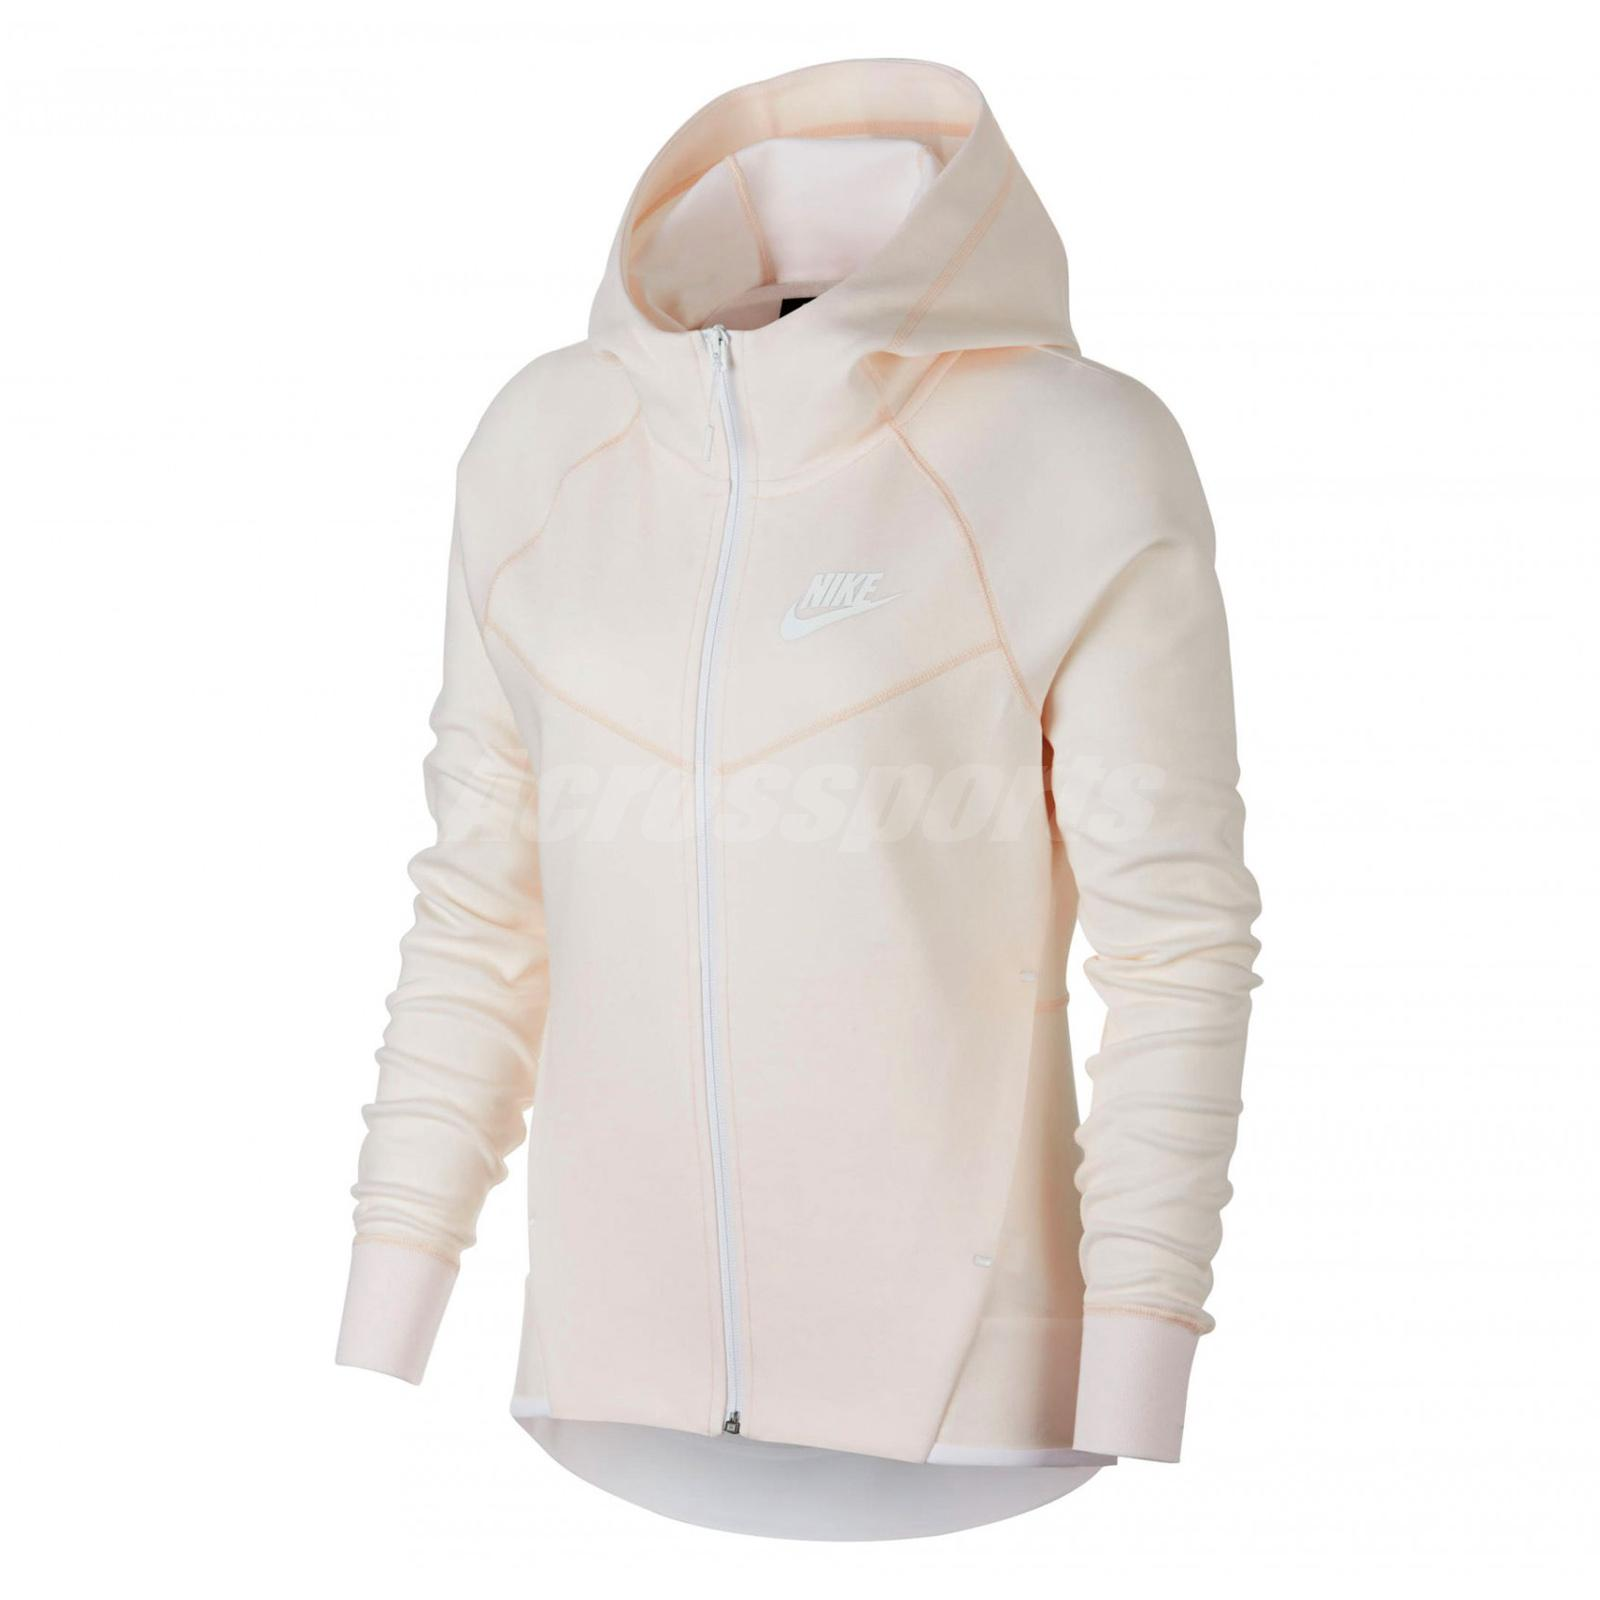 Nike Women Nsw Tech Fleece Windrunner Hoodie Full Zip Jacket Orange 930760 838 Ebay